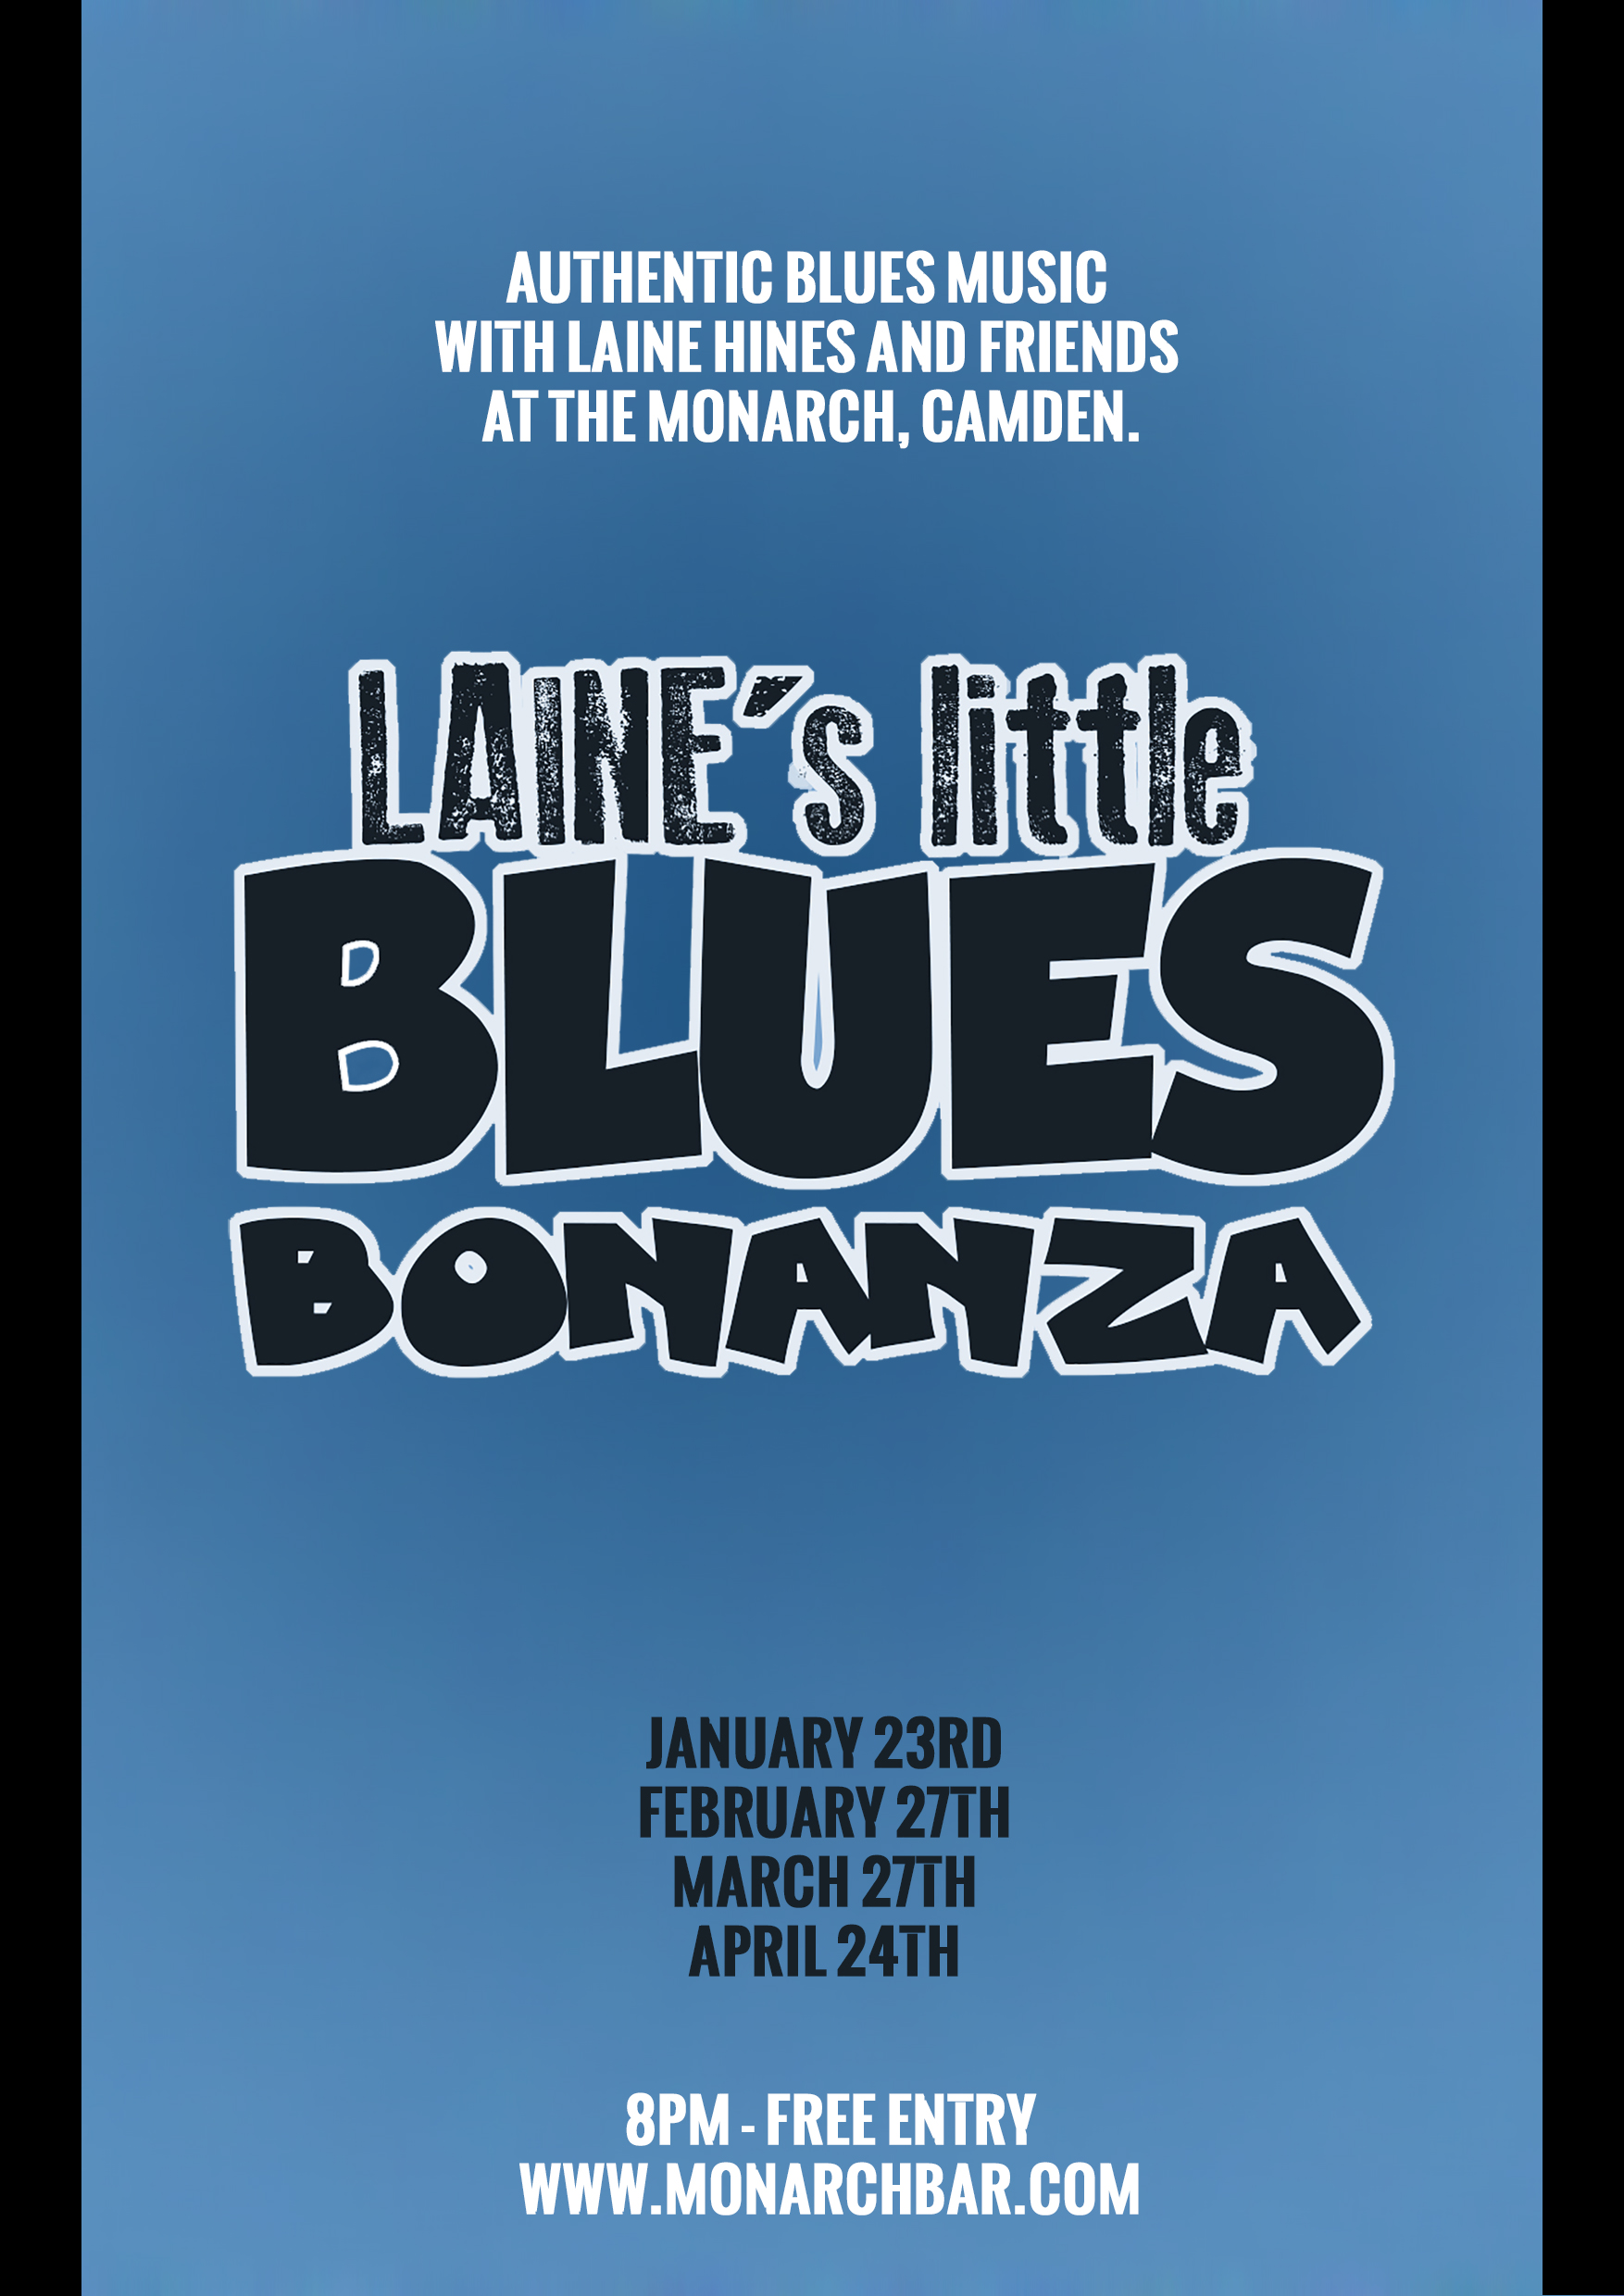 LAINES LITTLE BLUES BONANZA